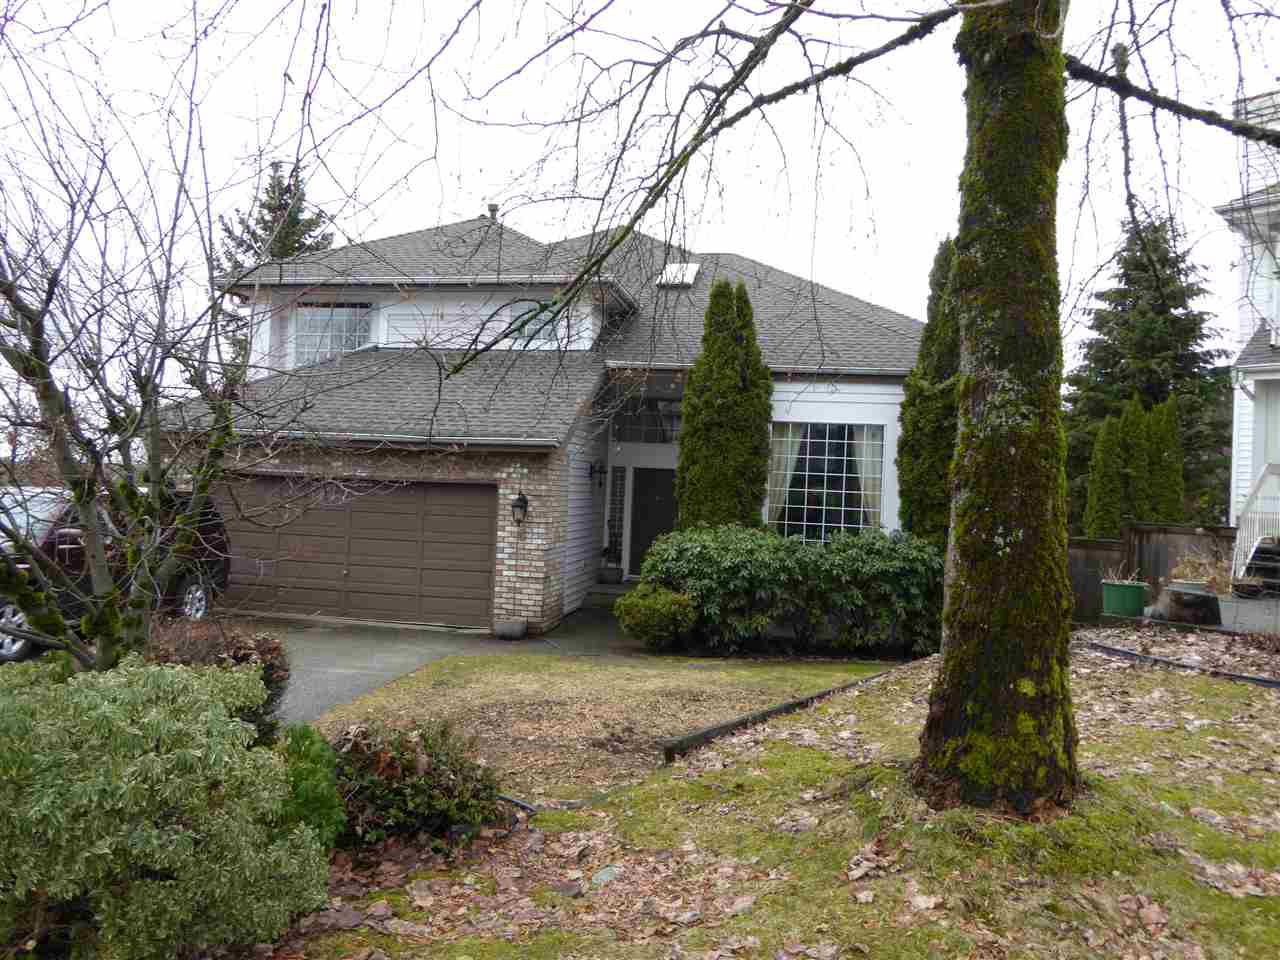 "Main Photo: 6 CEDARWOOD Court in Port Moody: Heritage Woods PM House for sale in ""HERITAGE WOODS"" : MLS®# R2137068"